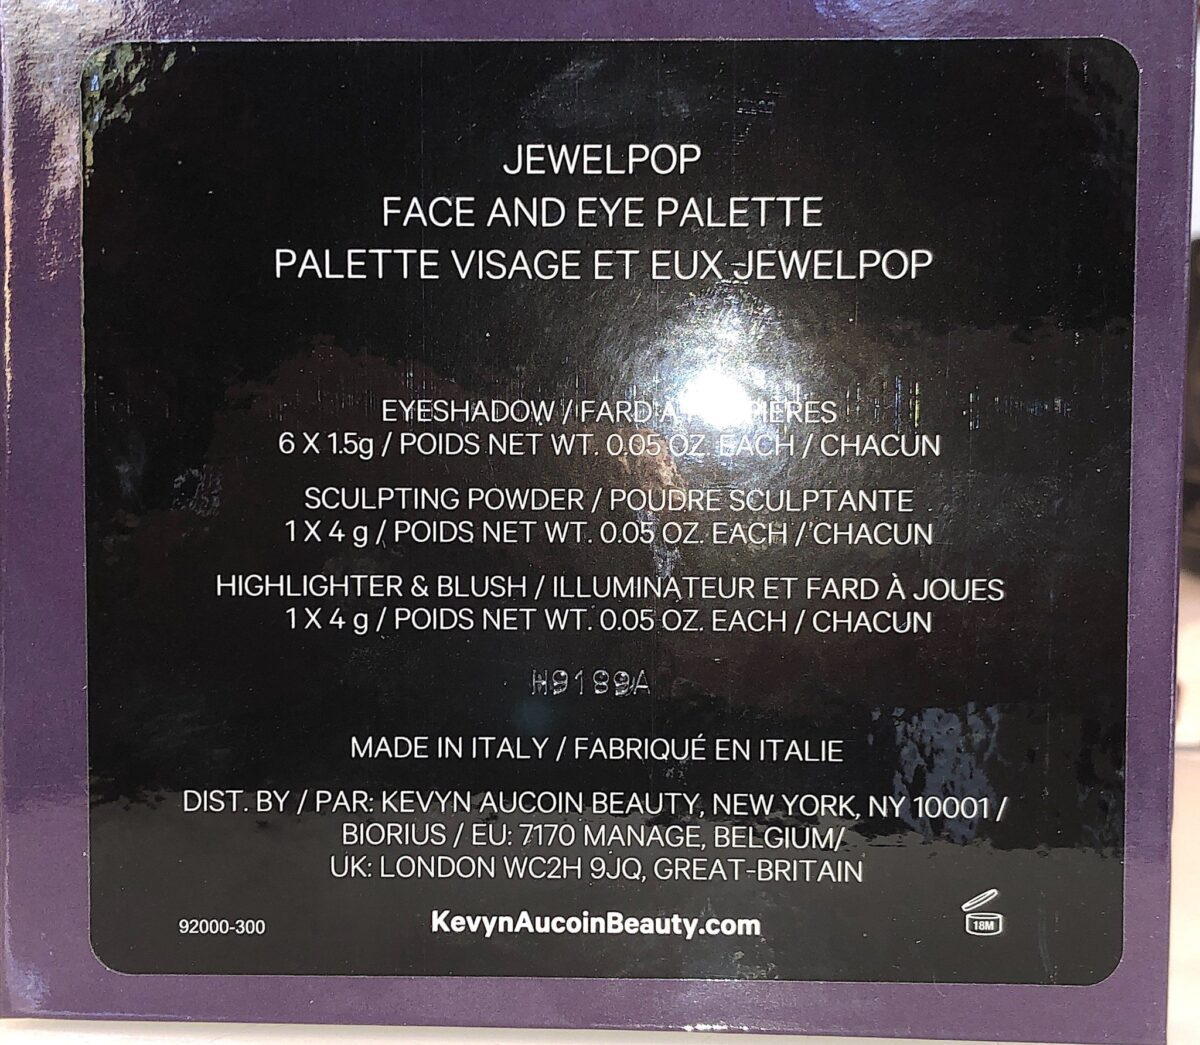 THE BACK OF THE KEVYN AUCOIN JEWEL POP PALETTE